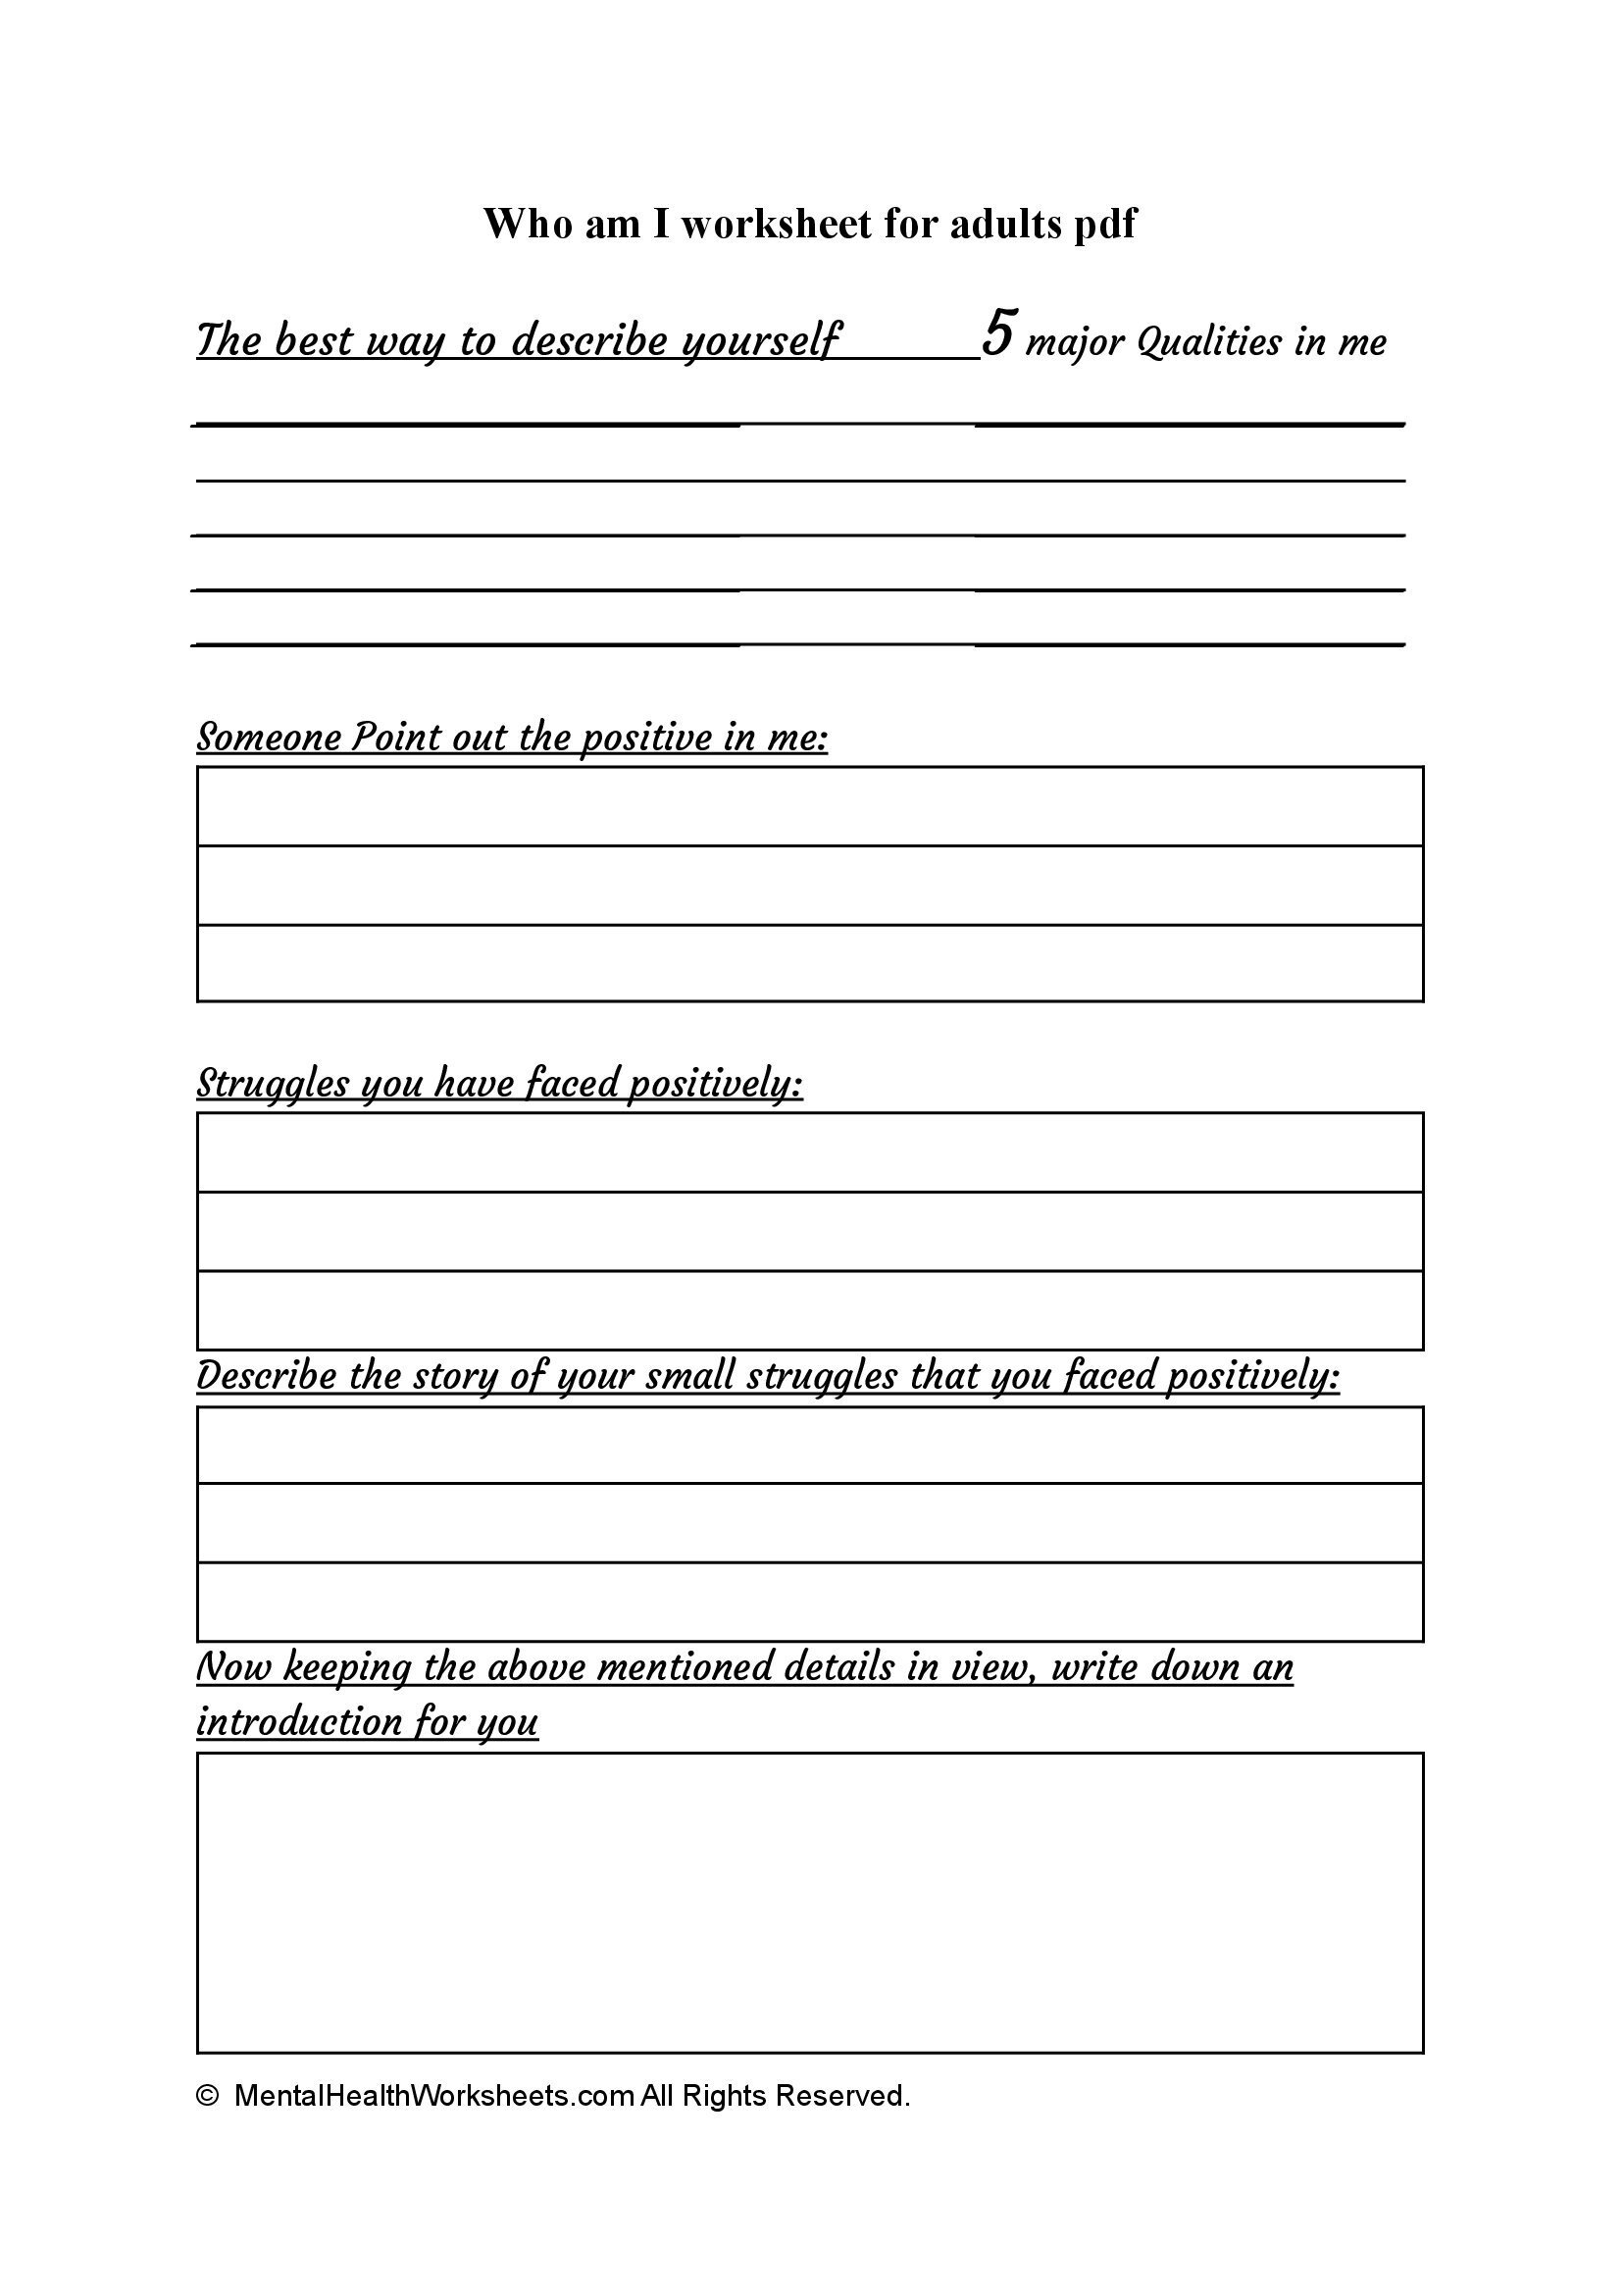 Who am I worksheet for adults pdf